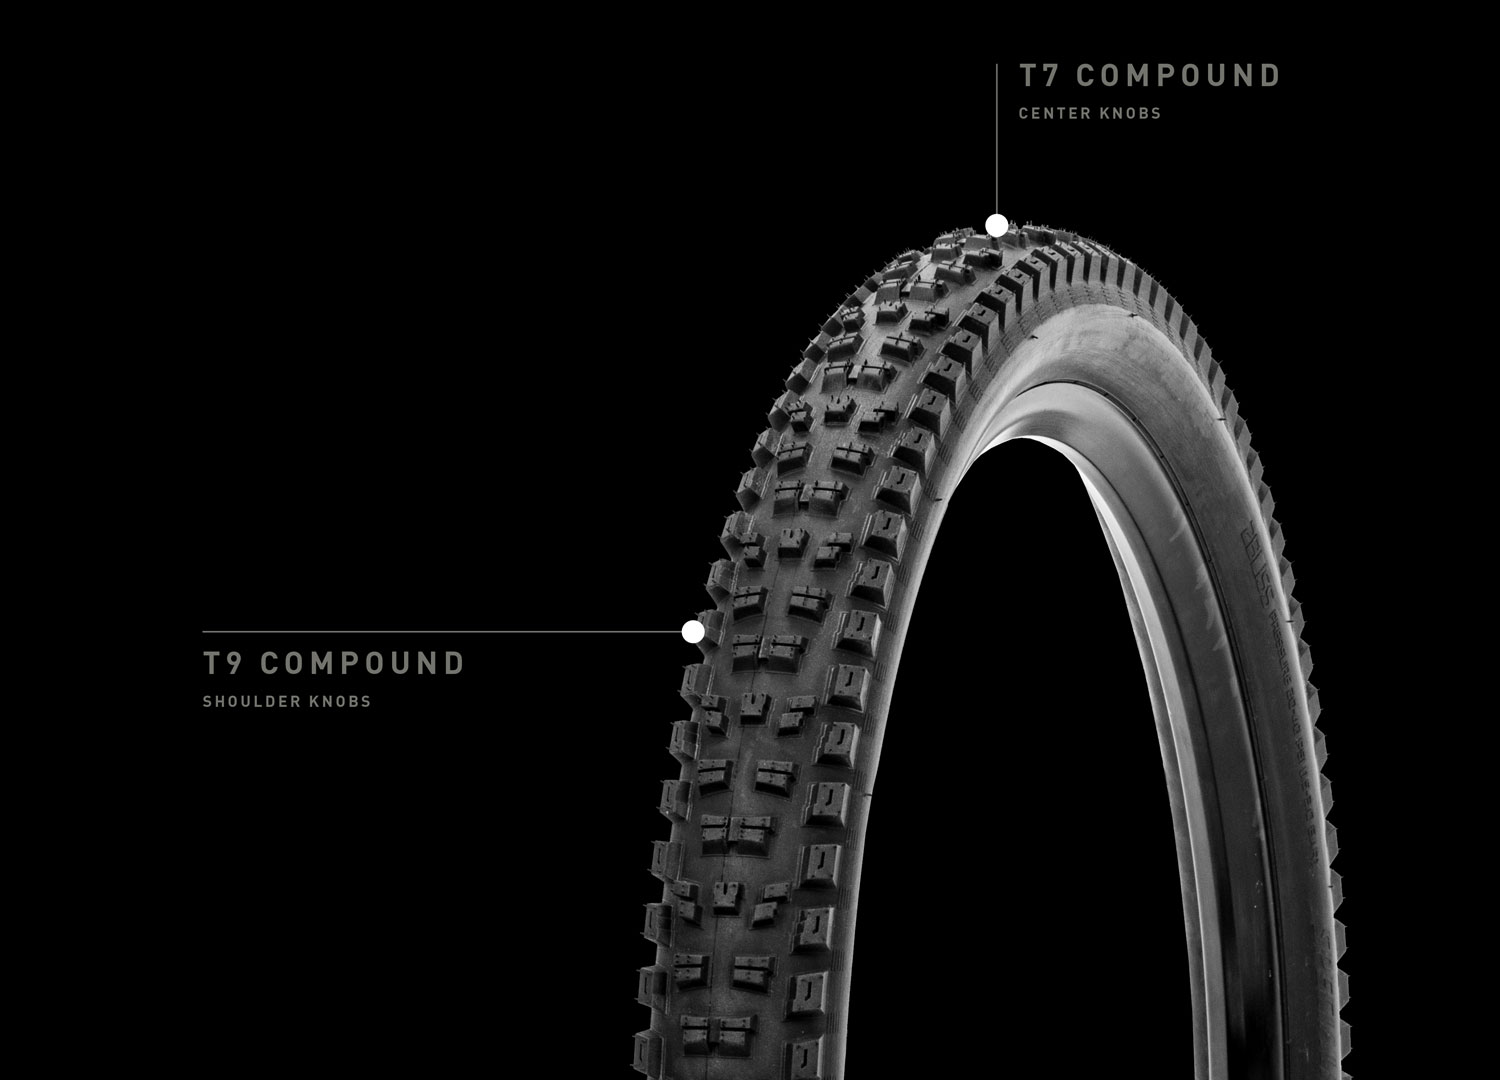 Specialized T9 Rubber Compound